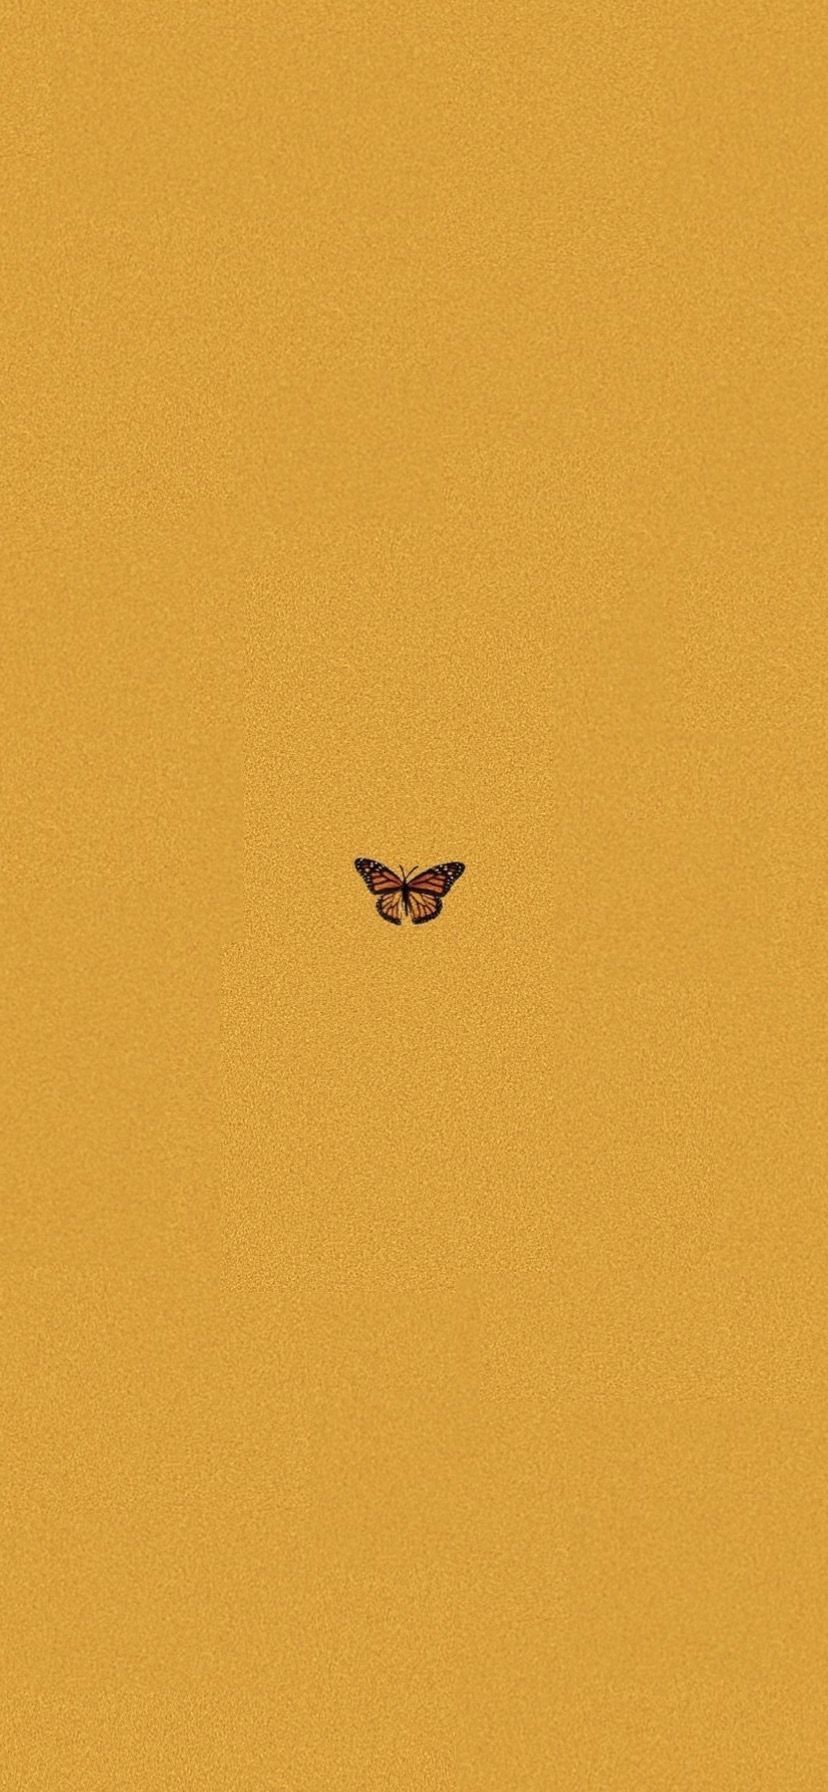 Wallpaper, yellow aesthetic butterfly IPhone X